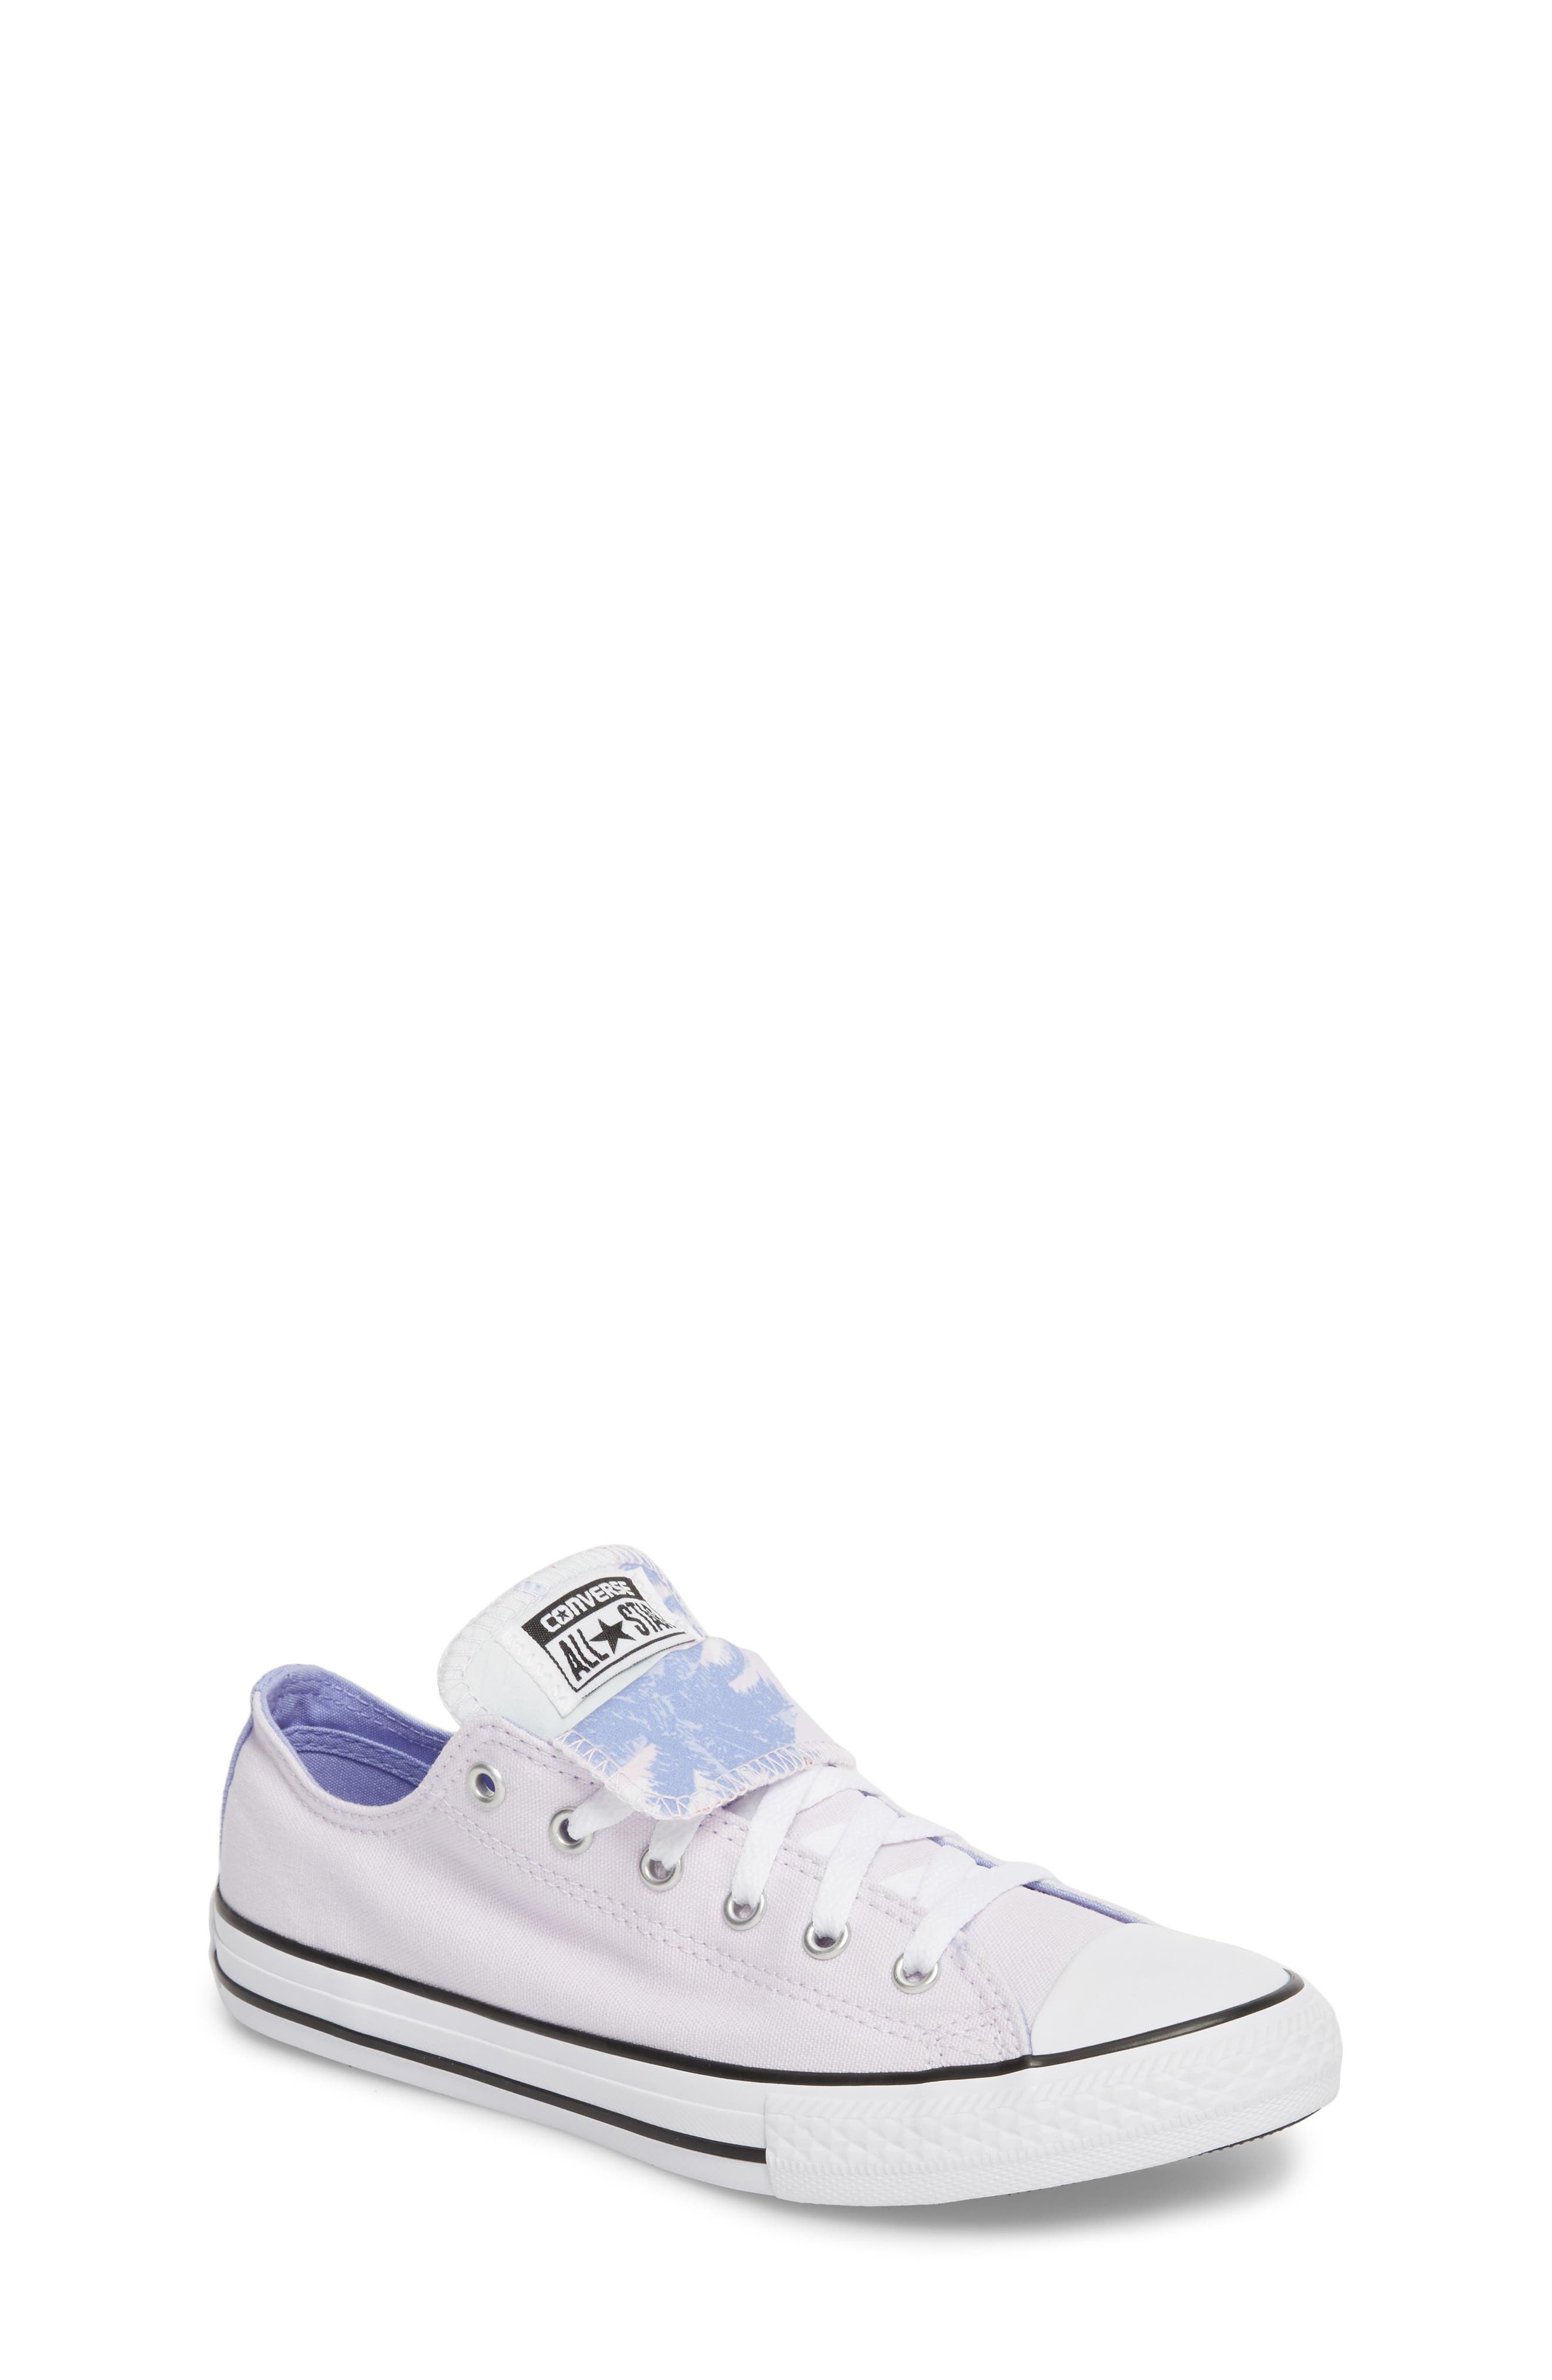 Chuck Taylor<sup>®</sup> All Star<sup>®</sup> Palm Tree Double Tongue Low Top Sneaker,                         Main,                         color, 551